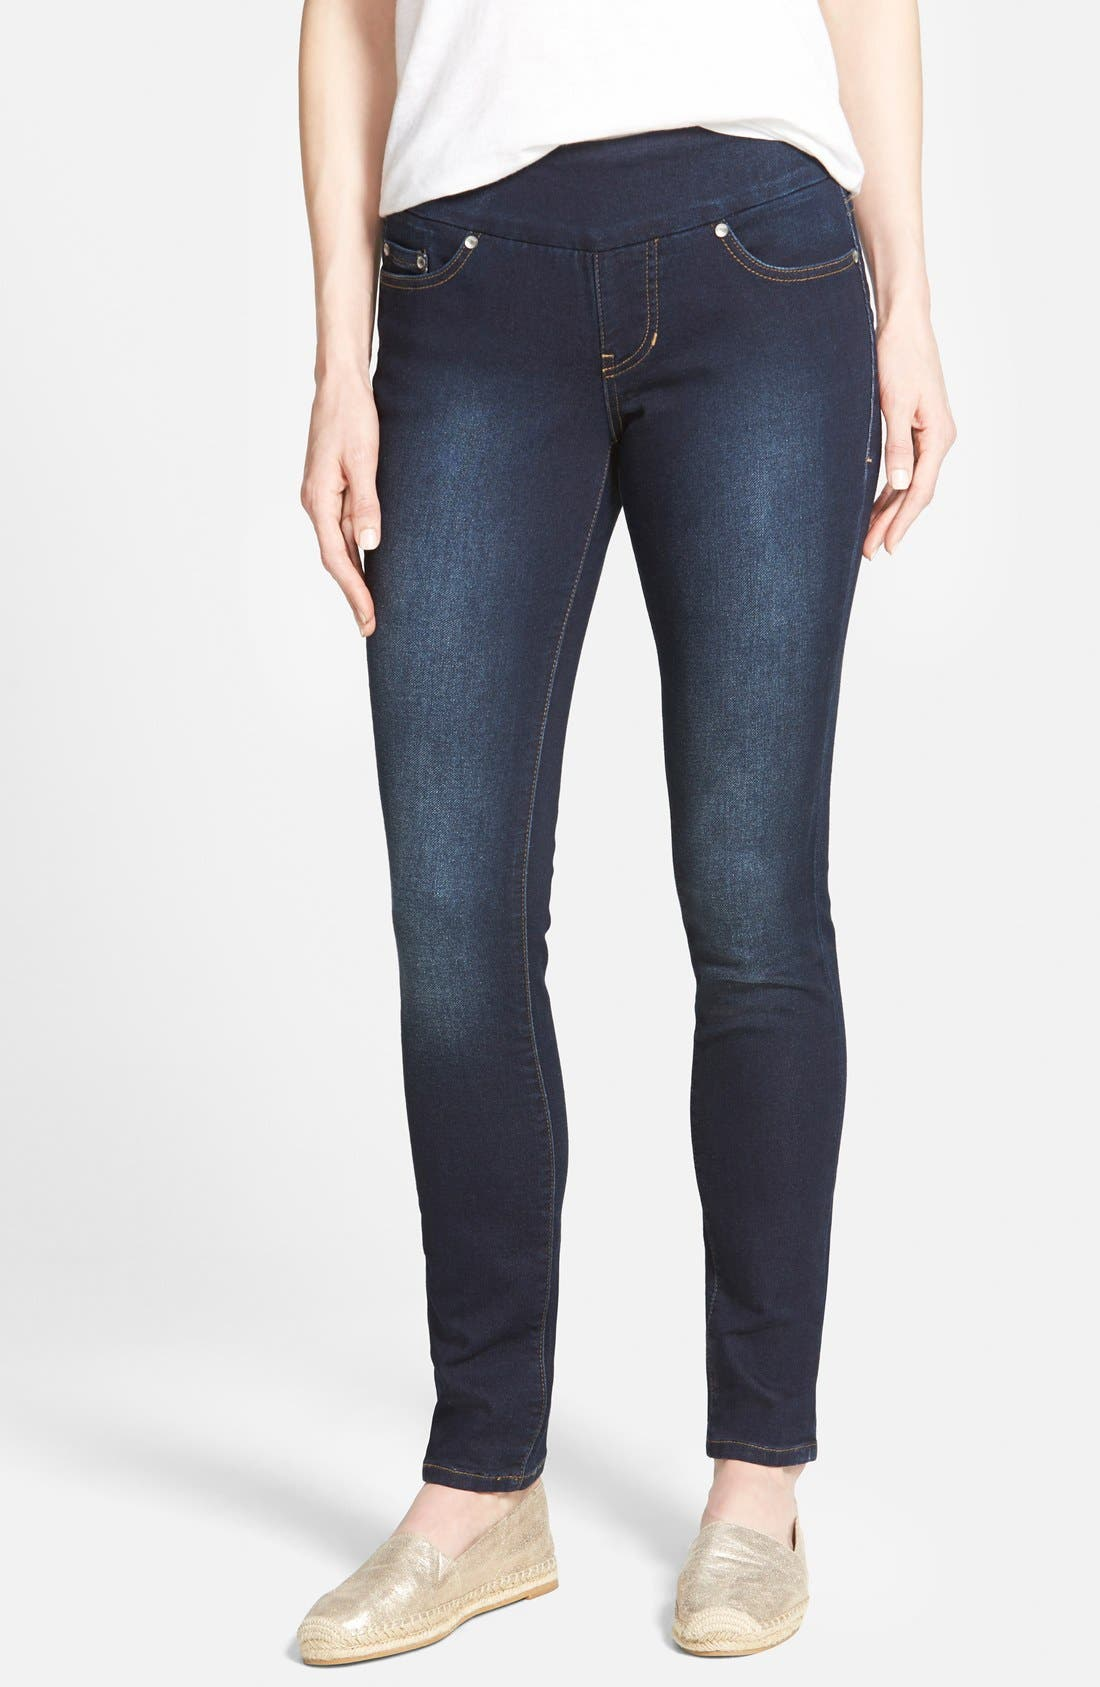 Main Image - Jag Jeans 'Nora' Pull-On Stretch Knit Skinny Jeans (Dark Whale) (Petite)